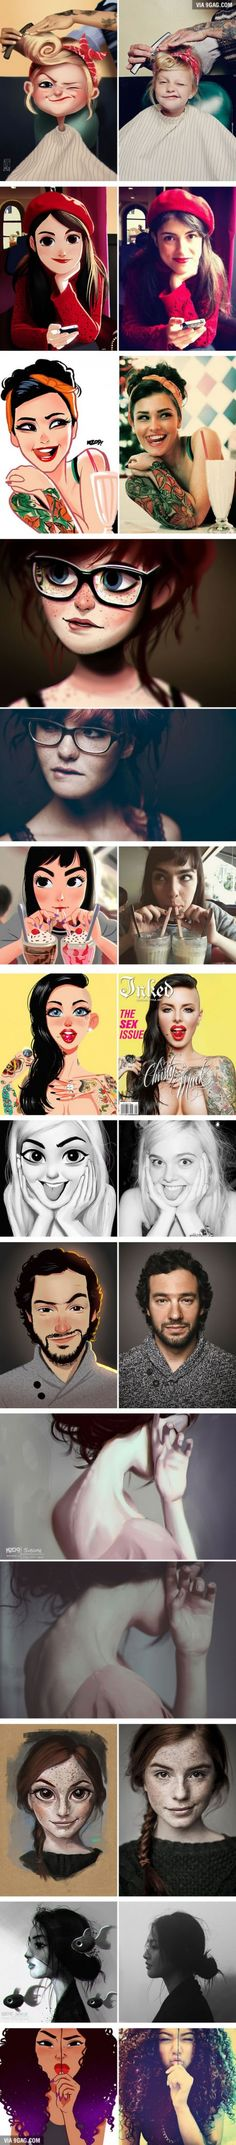 Artista transforma fotos de pessoas em divertidas ilustrações por Julio Cesar/Artist Turns Photos Of Random People Into Fun Illustrations (By Julio Cesar)